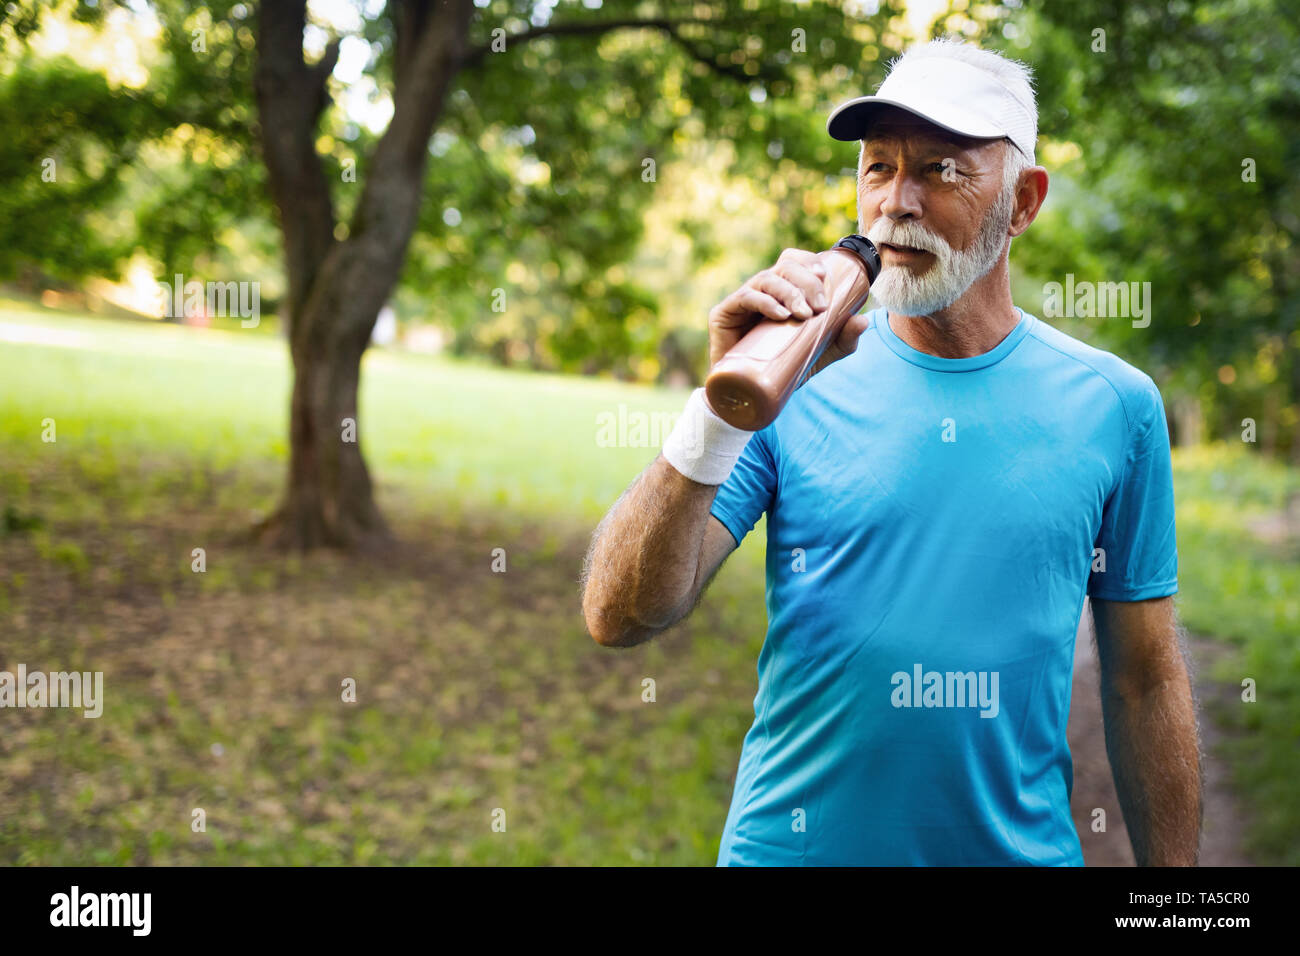 Handsome senior man resting after jog at the park on a sunny day. - Stock Image